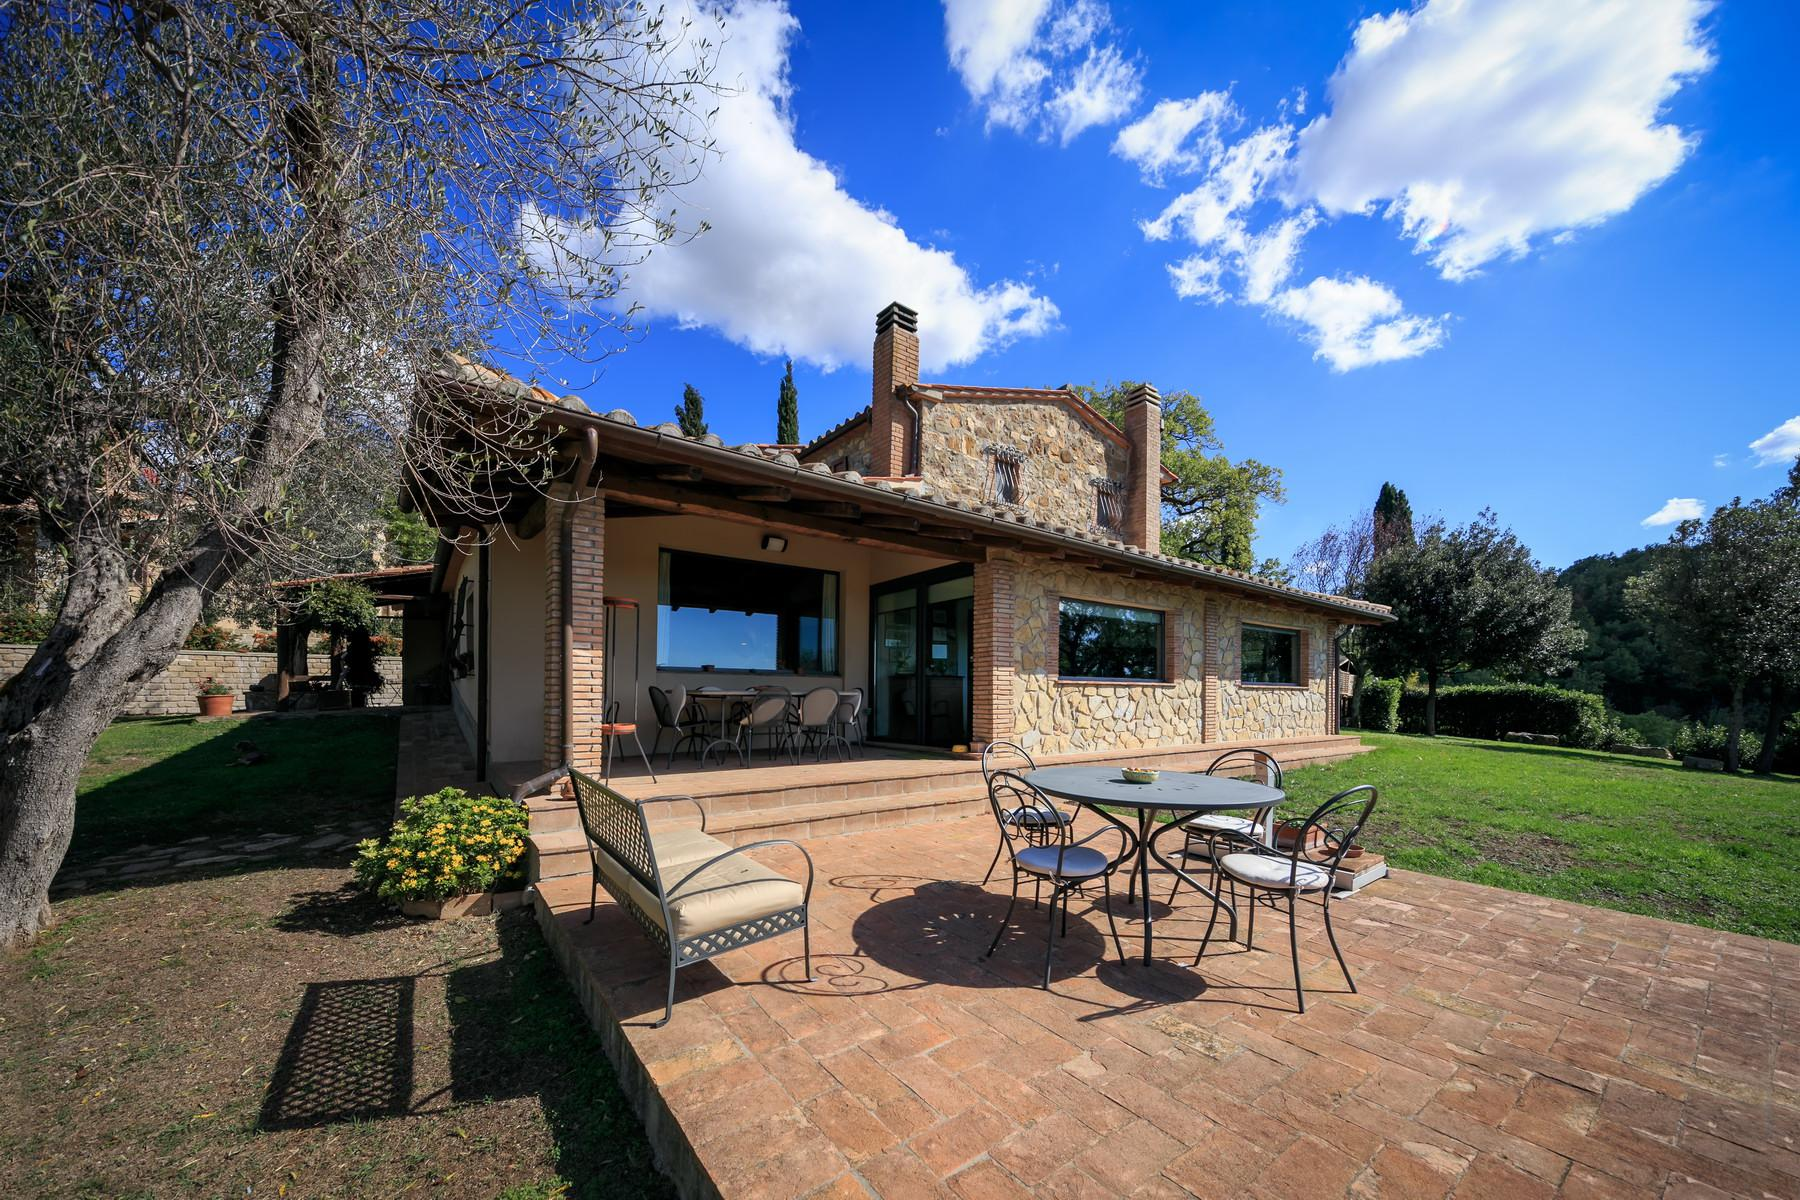 Farmhouse with outbuildingand pool with beautiful view over Saturnia and the surroundings - 5